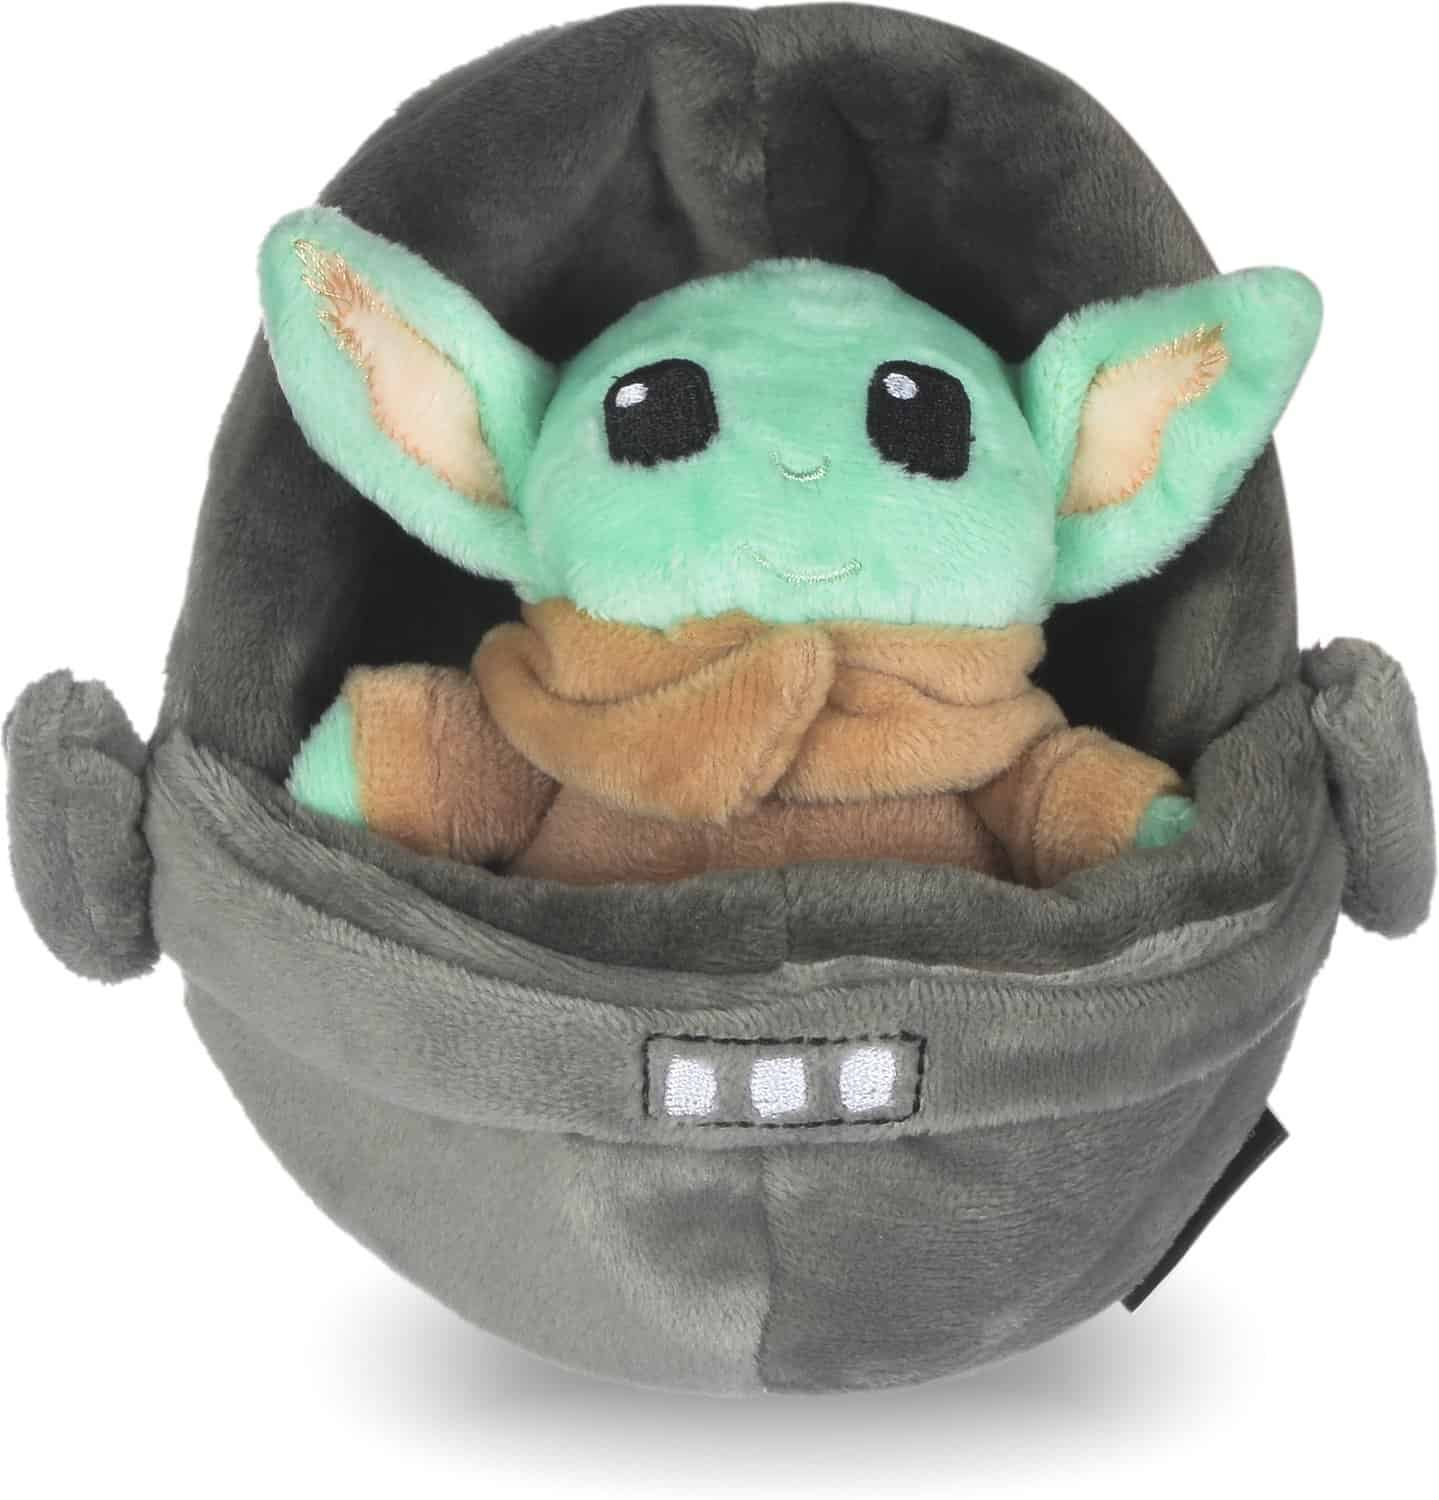 """Fetch For Pets Star Wars: Mandalorian """"The Child In Cradle"""" Squeaky Plush Dog Toy"""